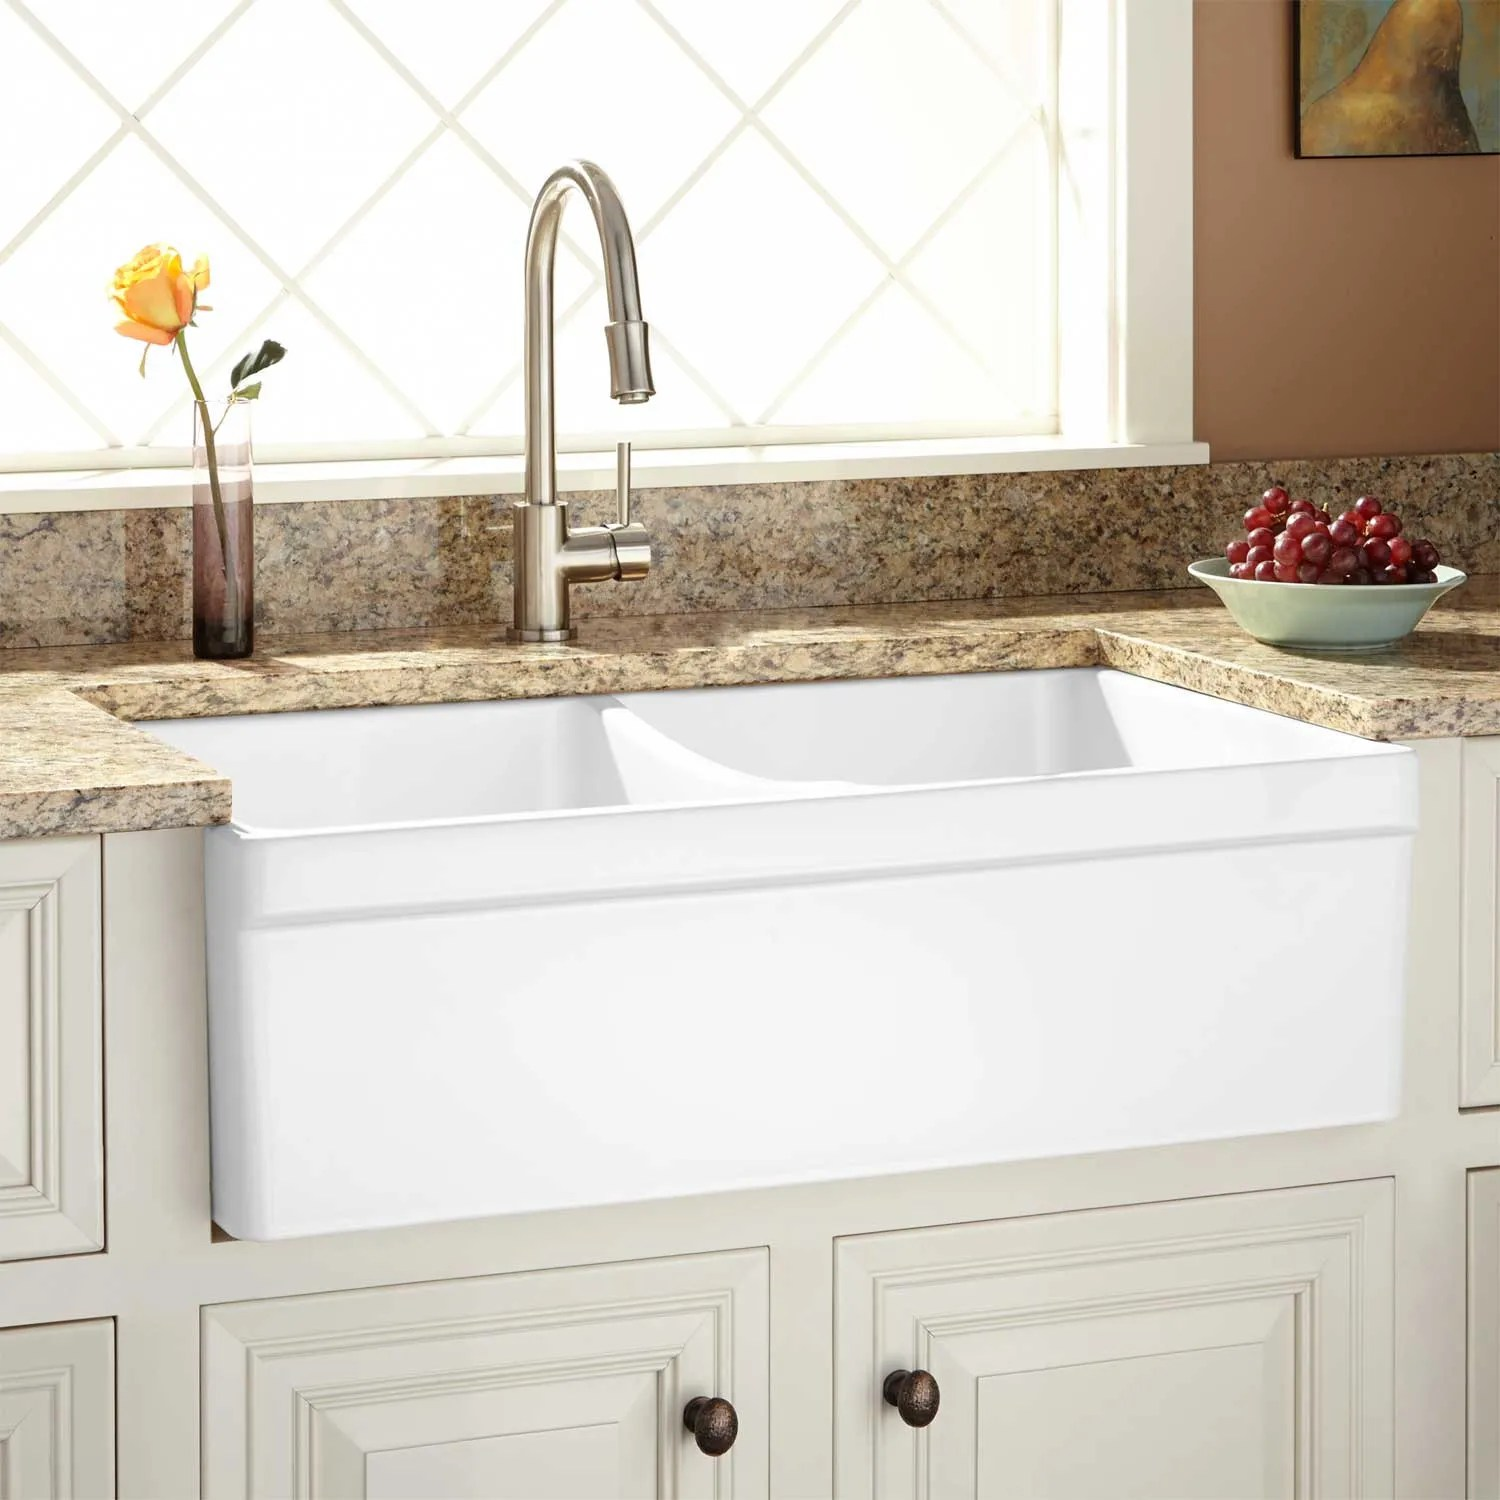 Latoscana Farmhouse Sink 36 Fireclay Kitchen Sinks Besto Blog